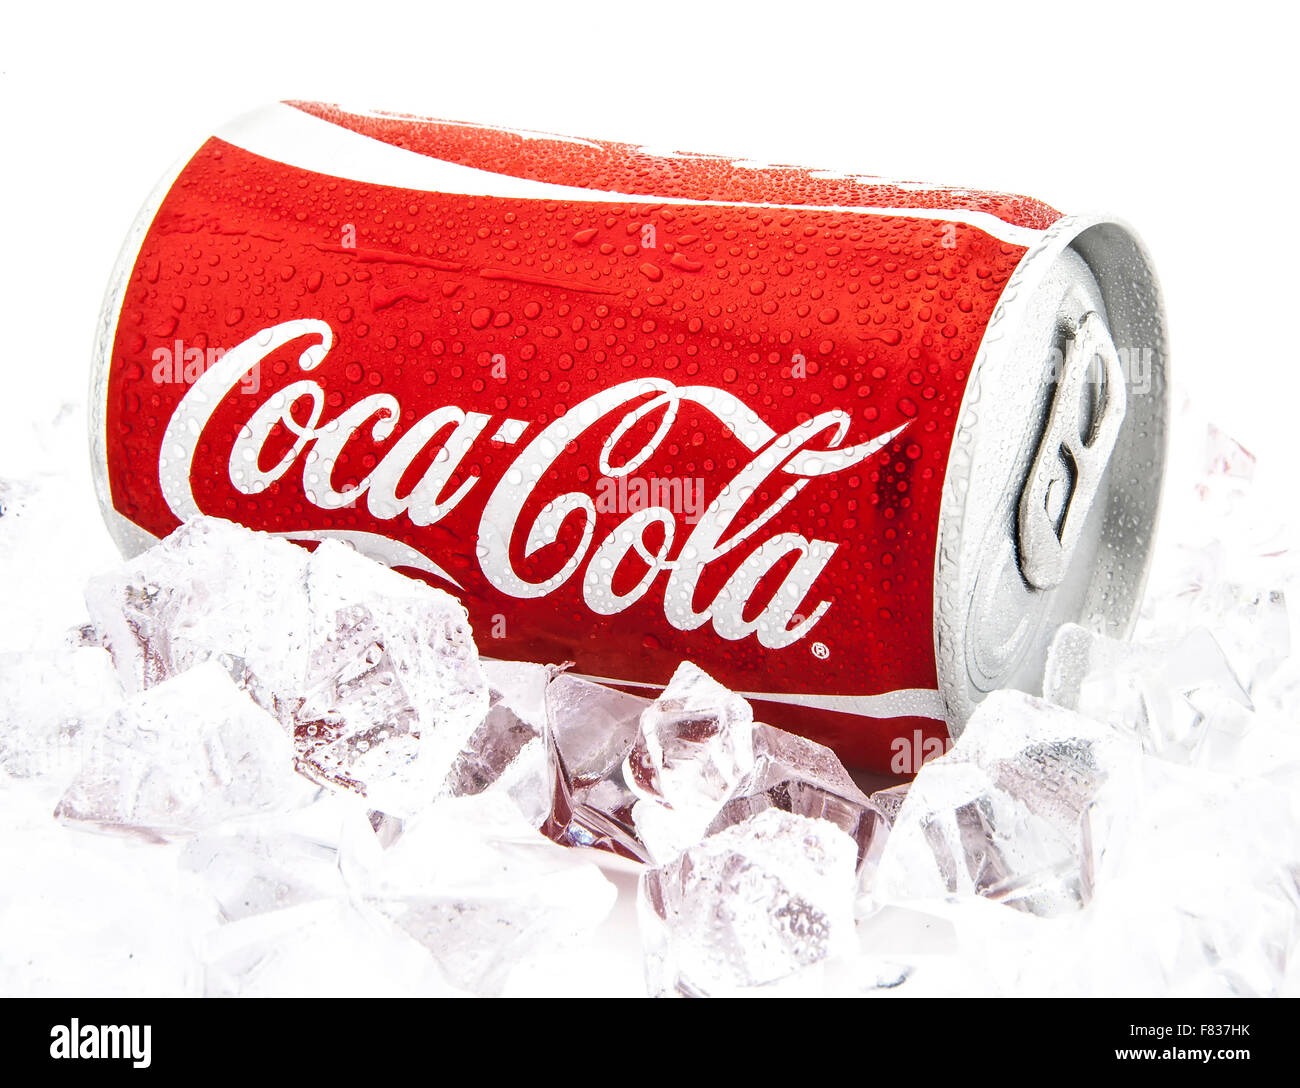 Can of Coca-Cola on a bed of ice over a white background - Stock Image